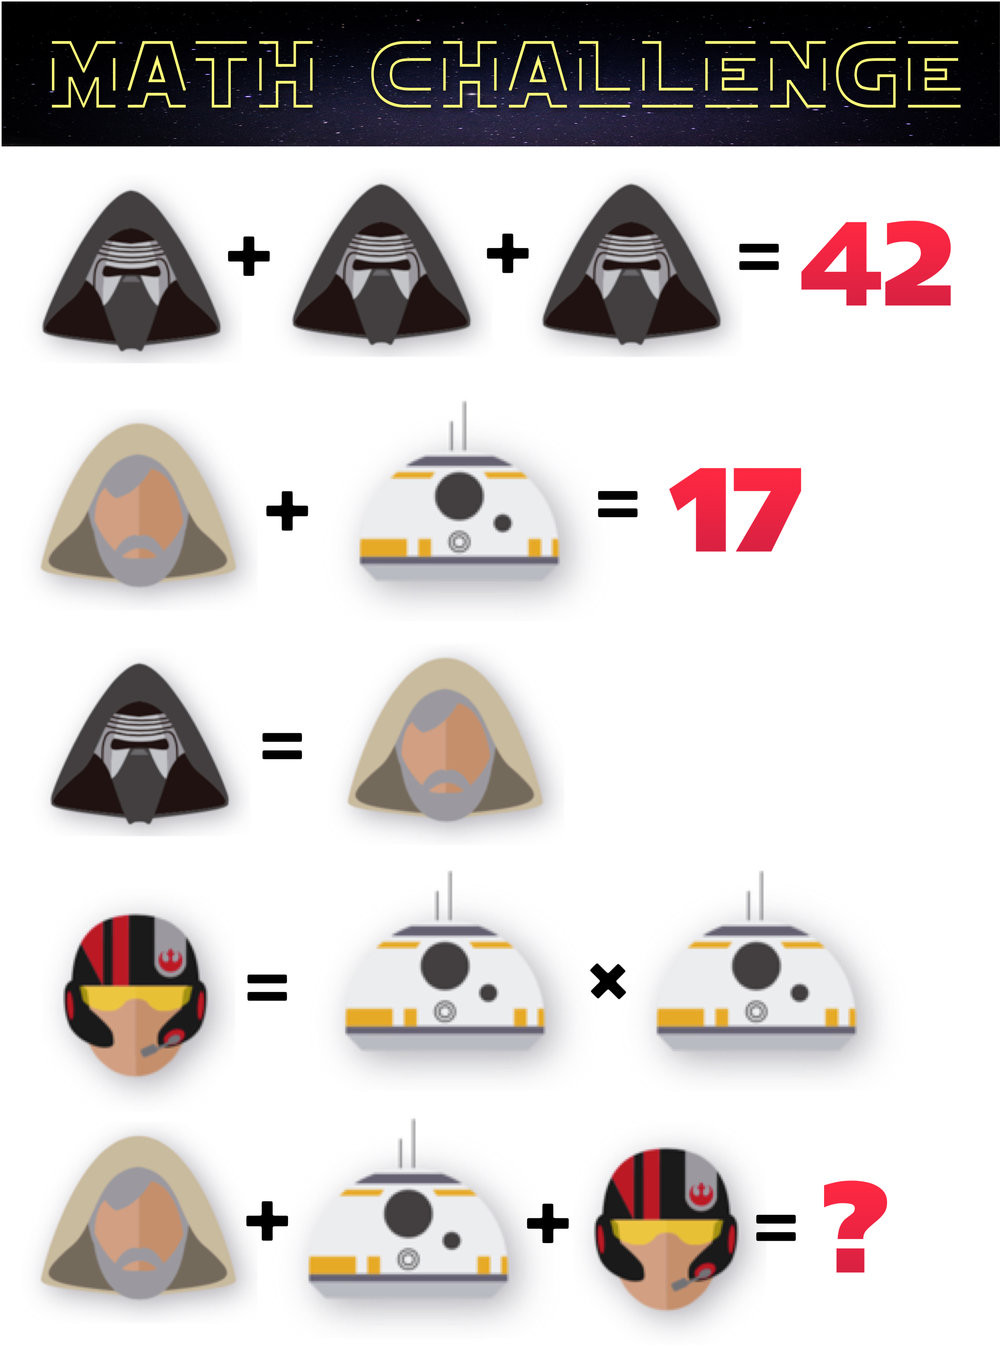 Star Wars Maths Worksheets Can Your Students solve these Star Wars Math Problems